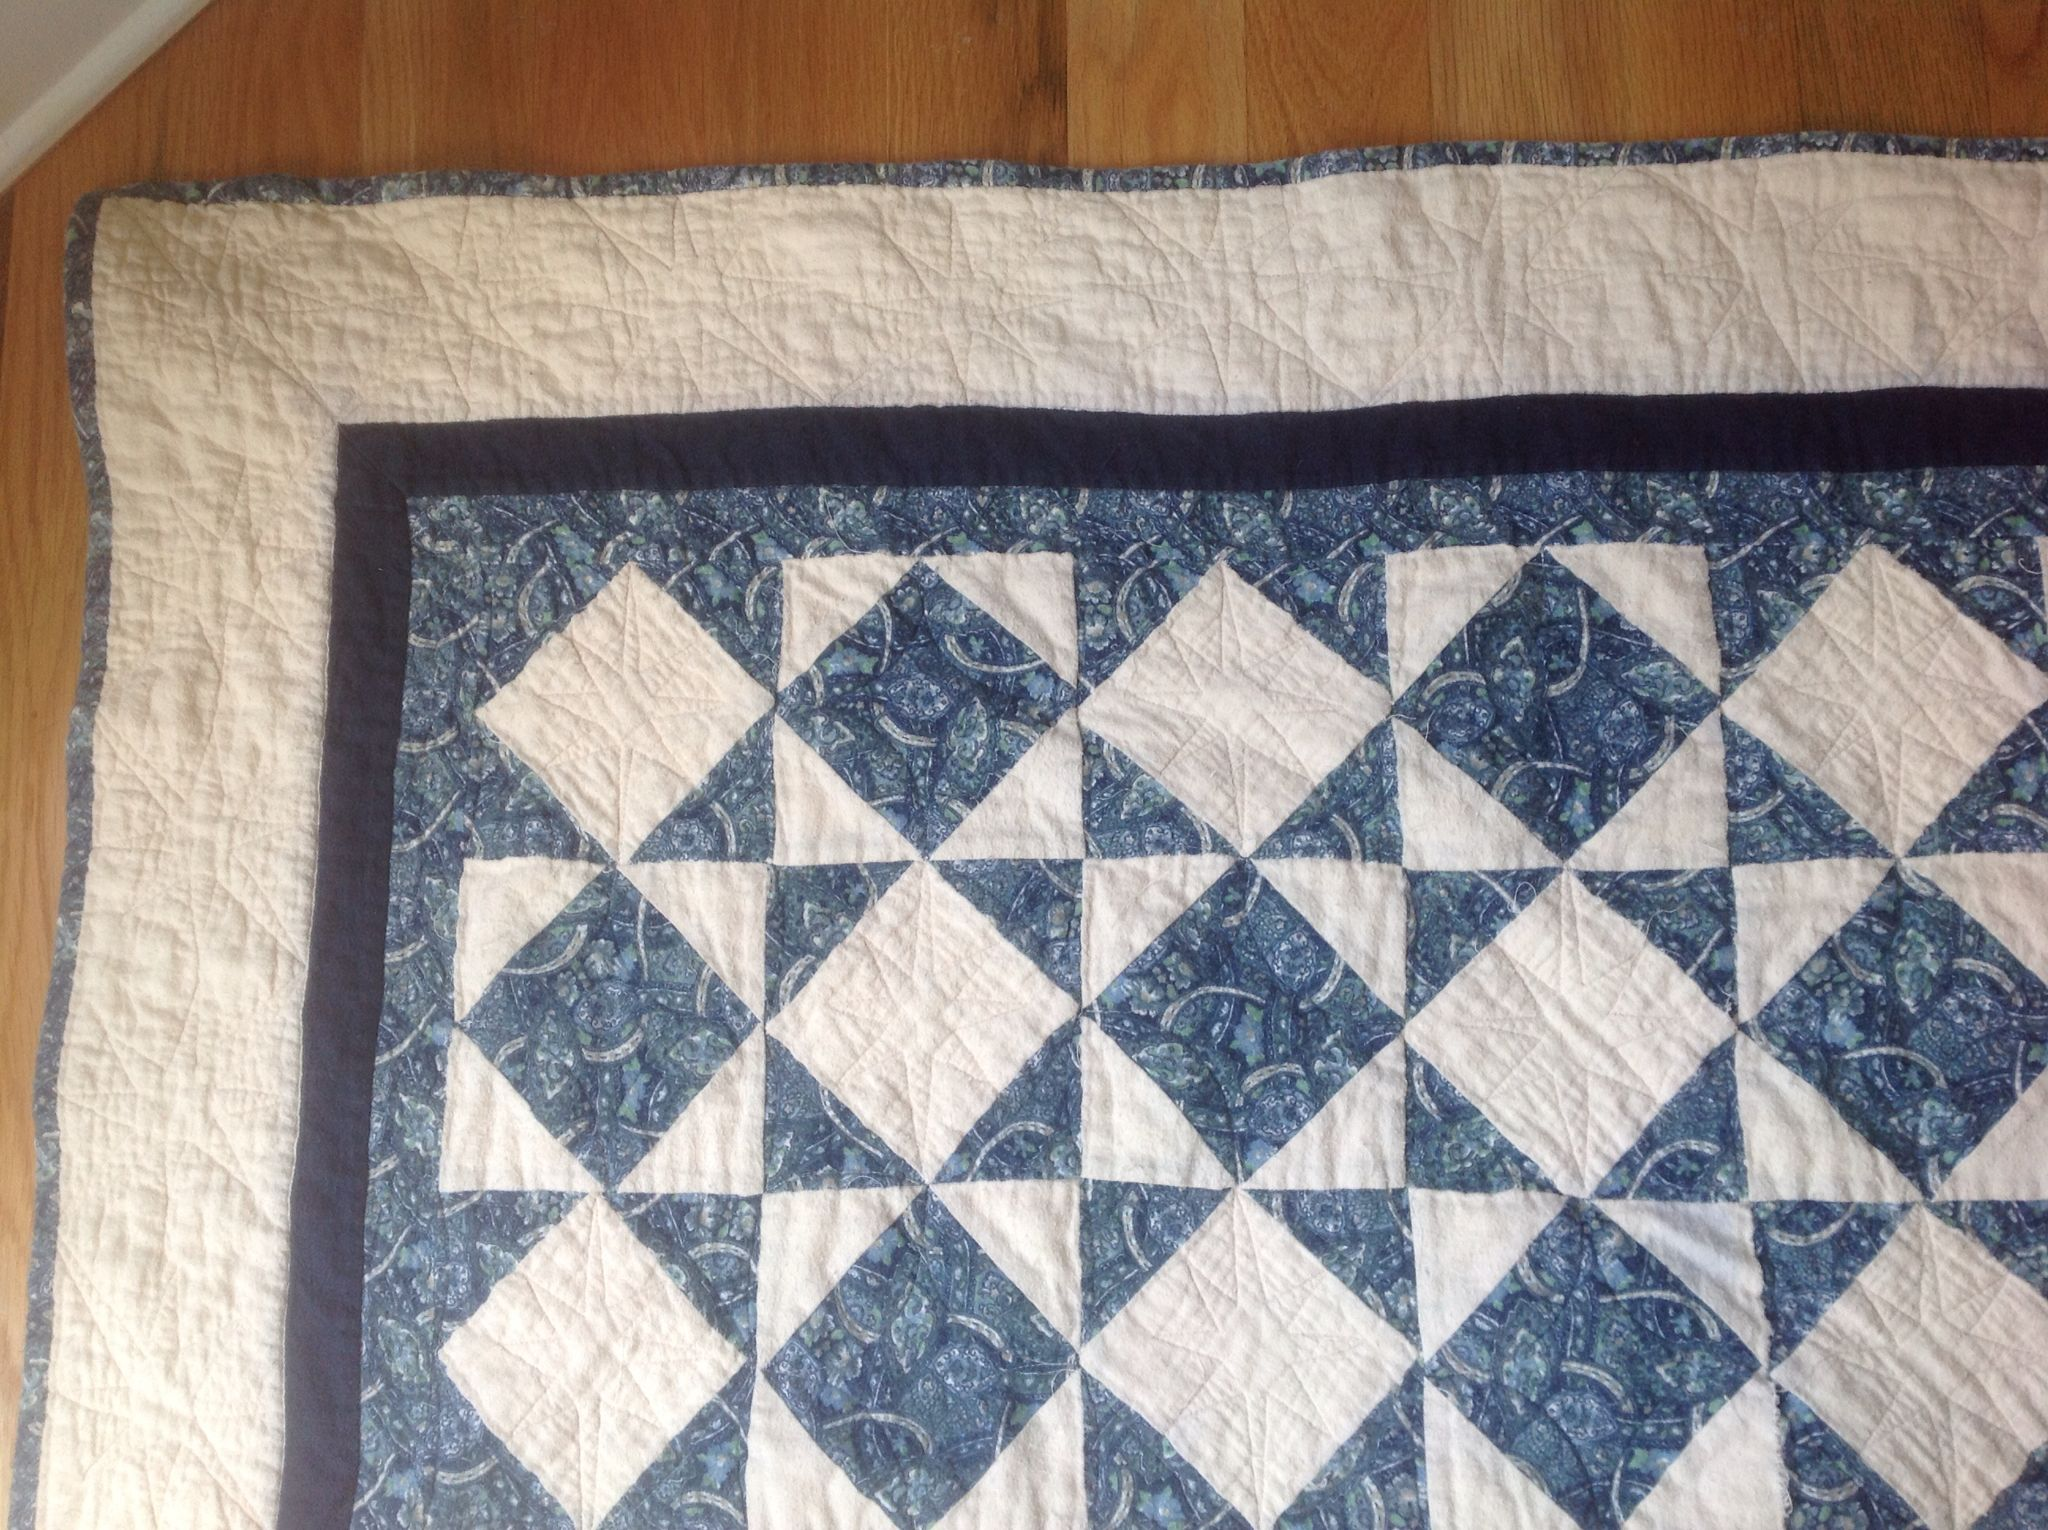 Close-up of blue and white flannel disappearing star quilt. Designed by my baby sister for her high-school graduation gift.